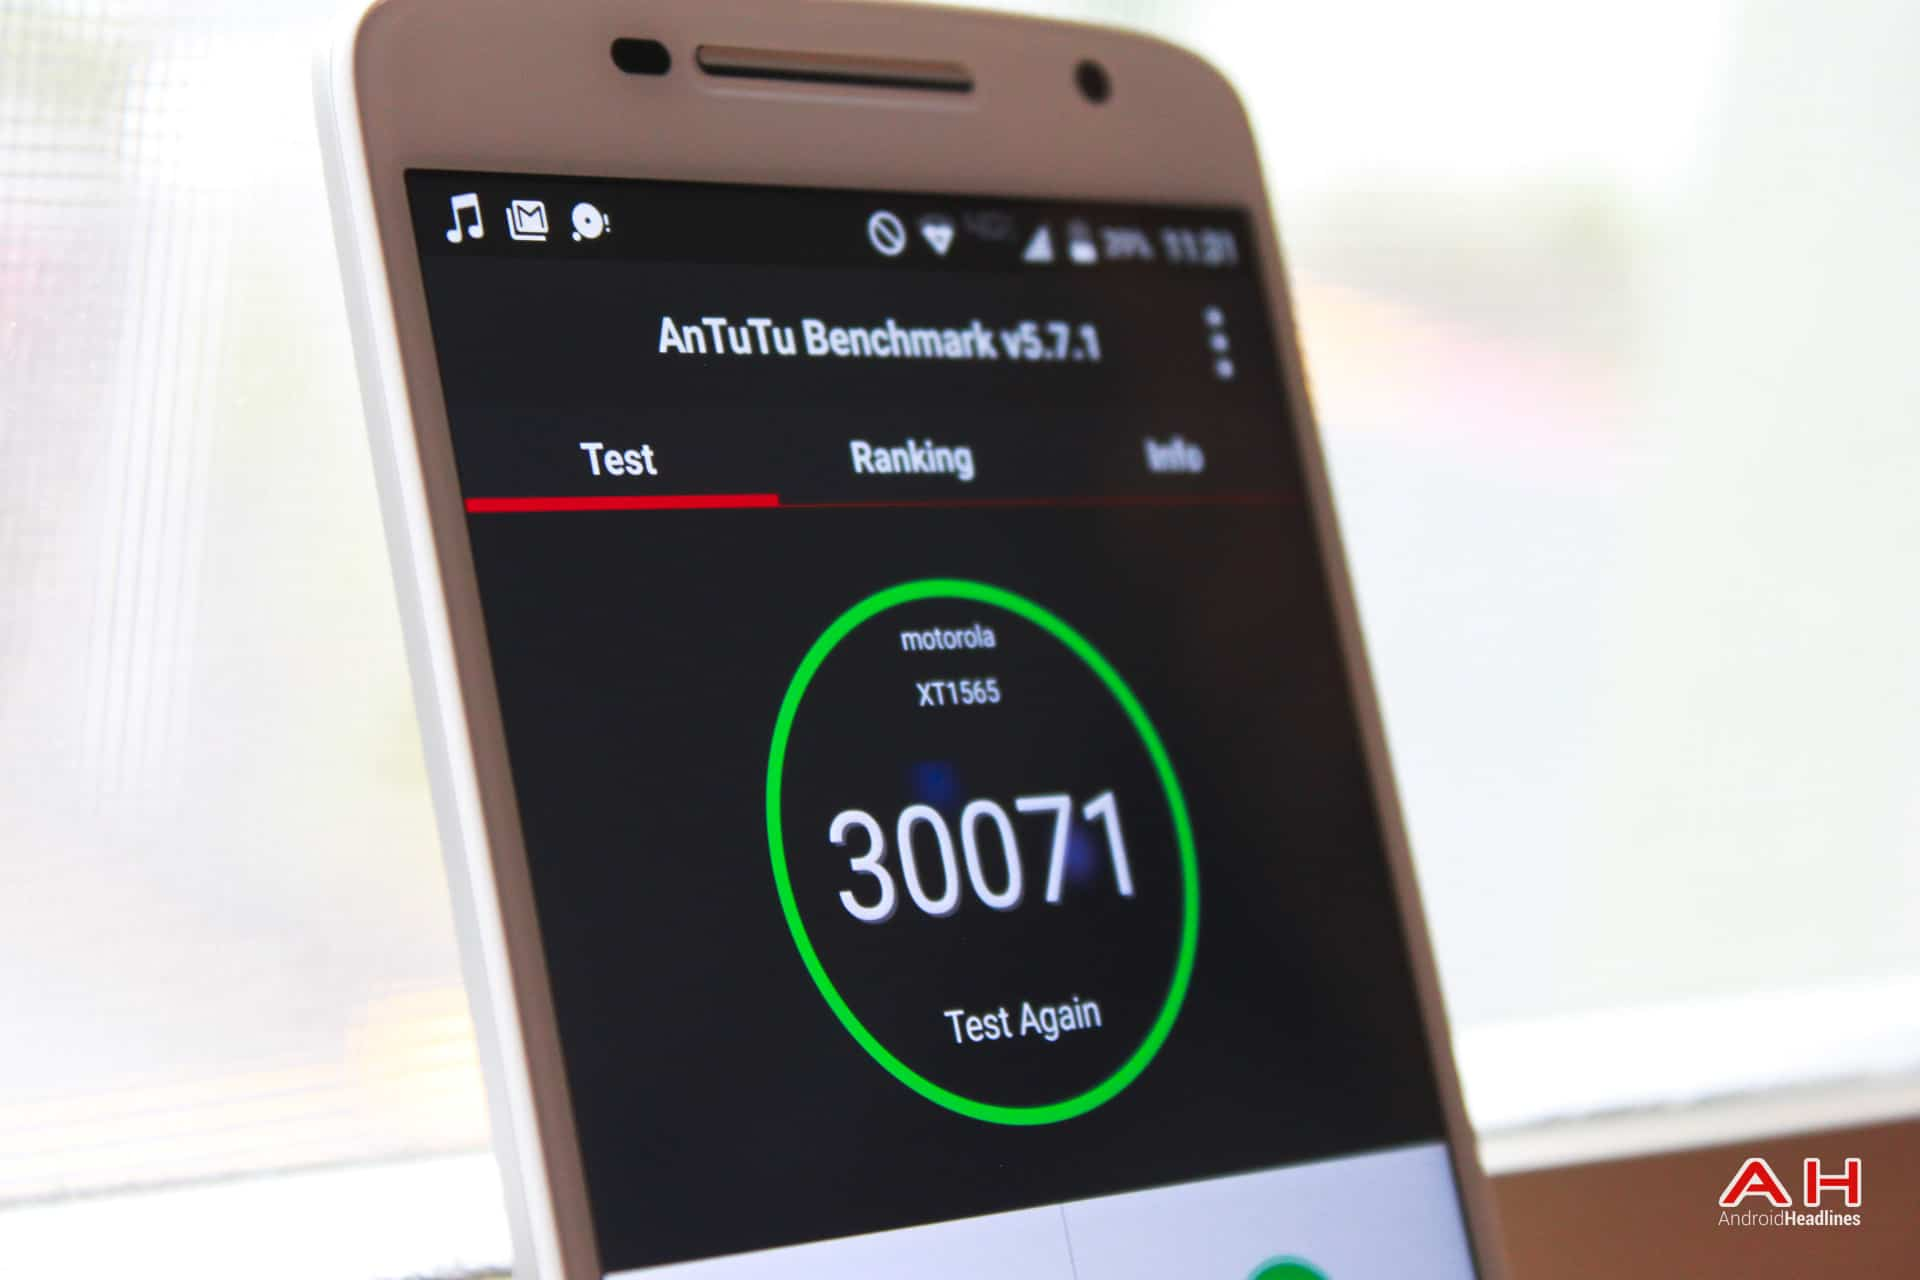 Benchmarks Ah Droid Maxx 2  Review2